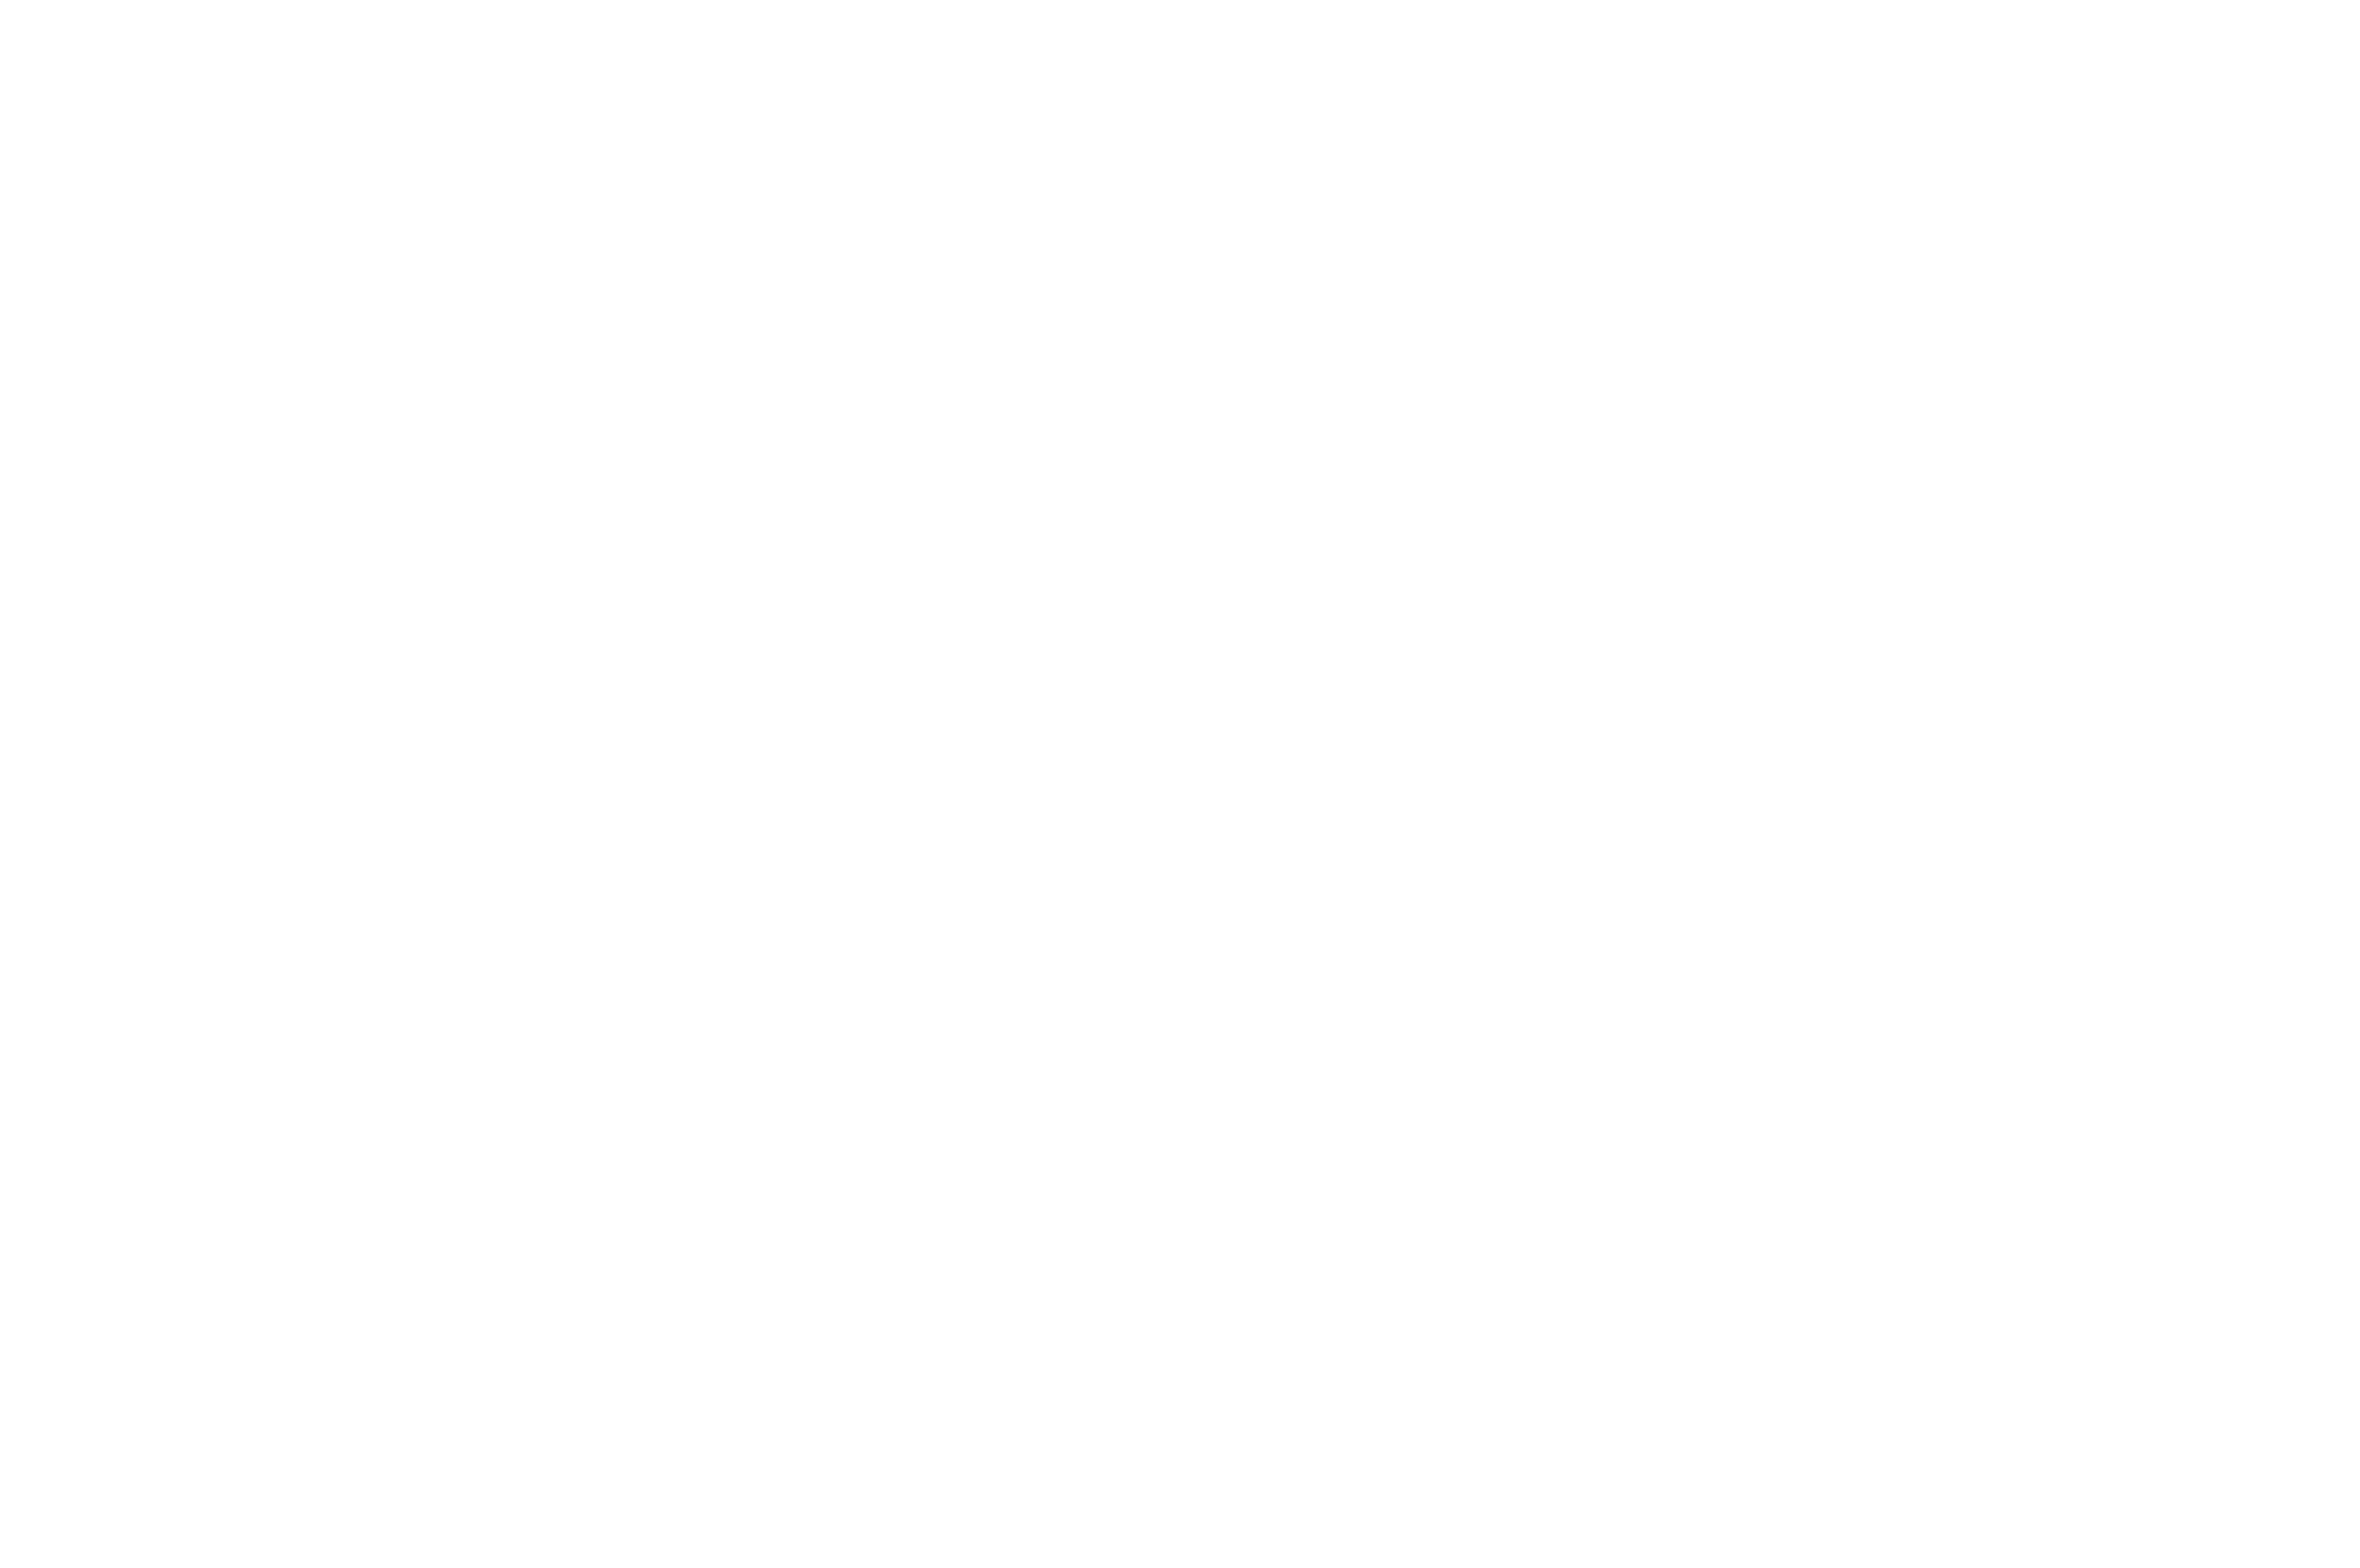 Der faire Salon